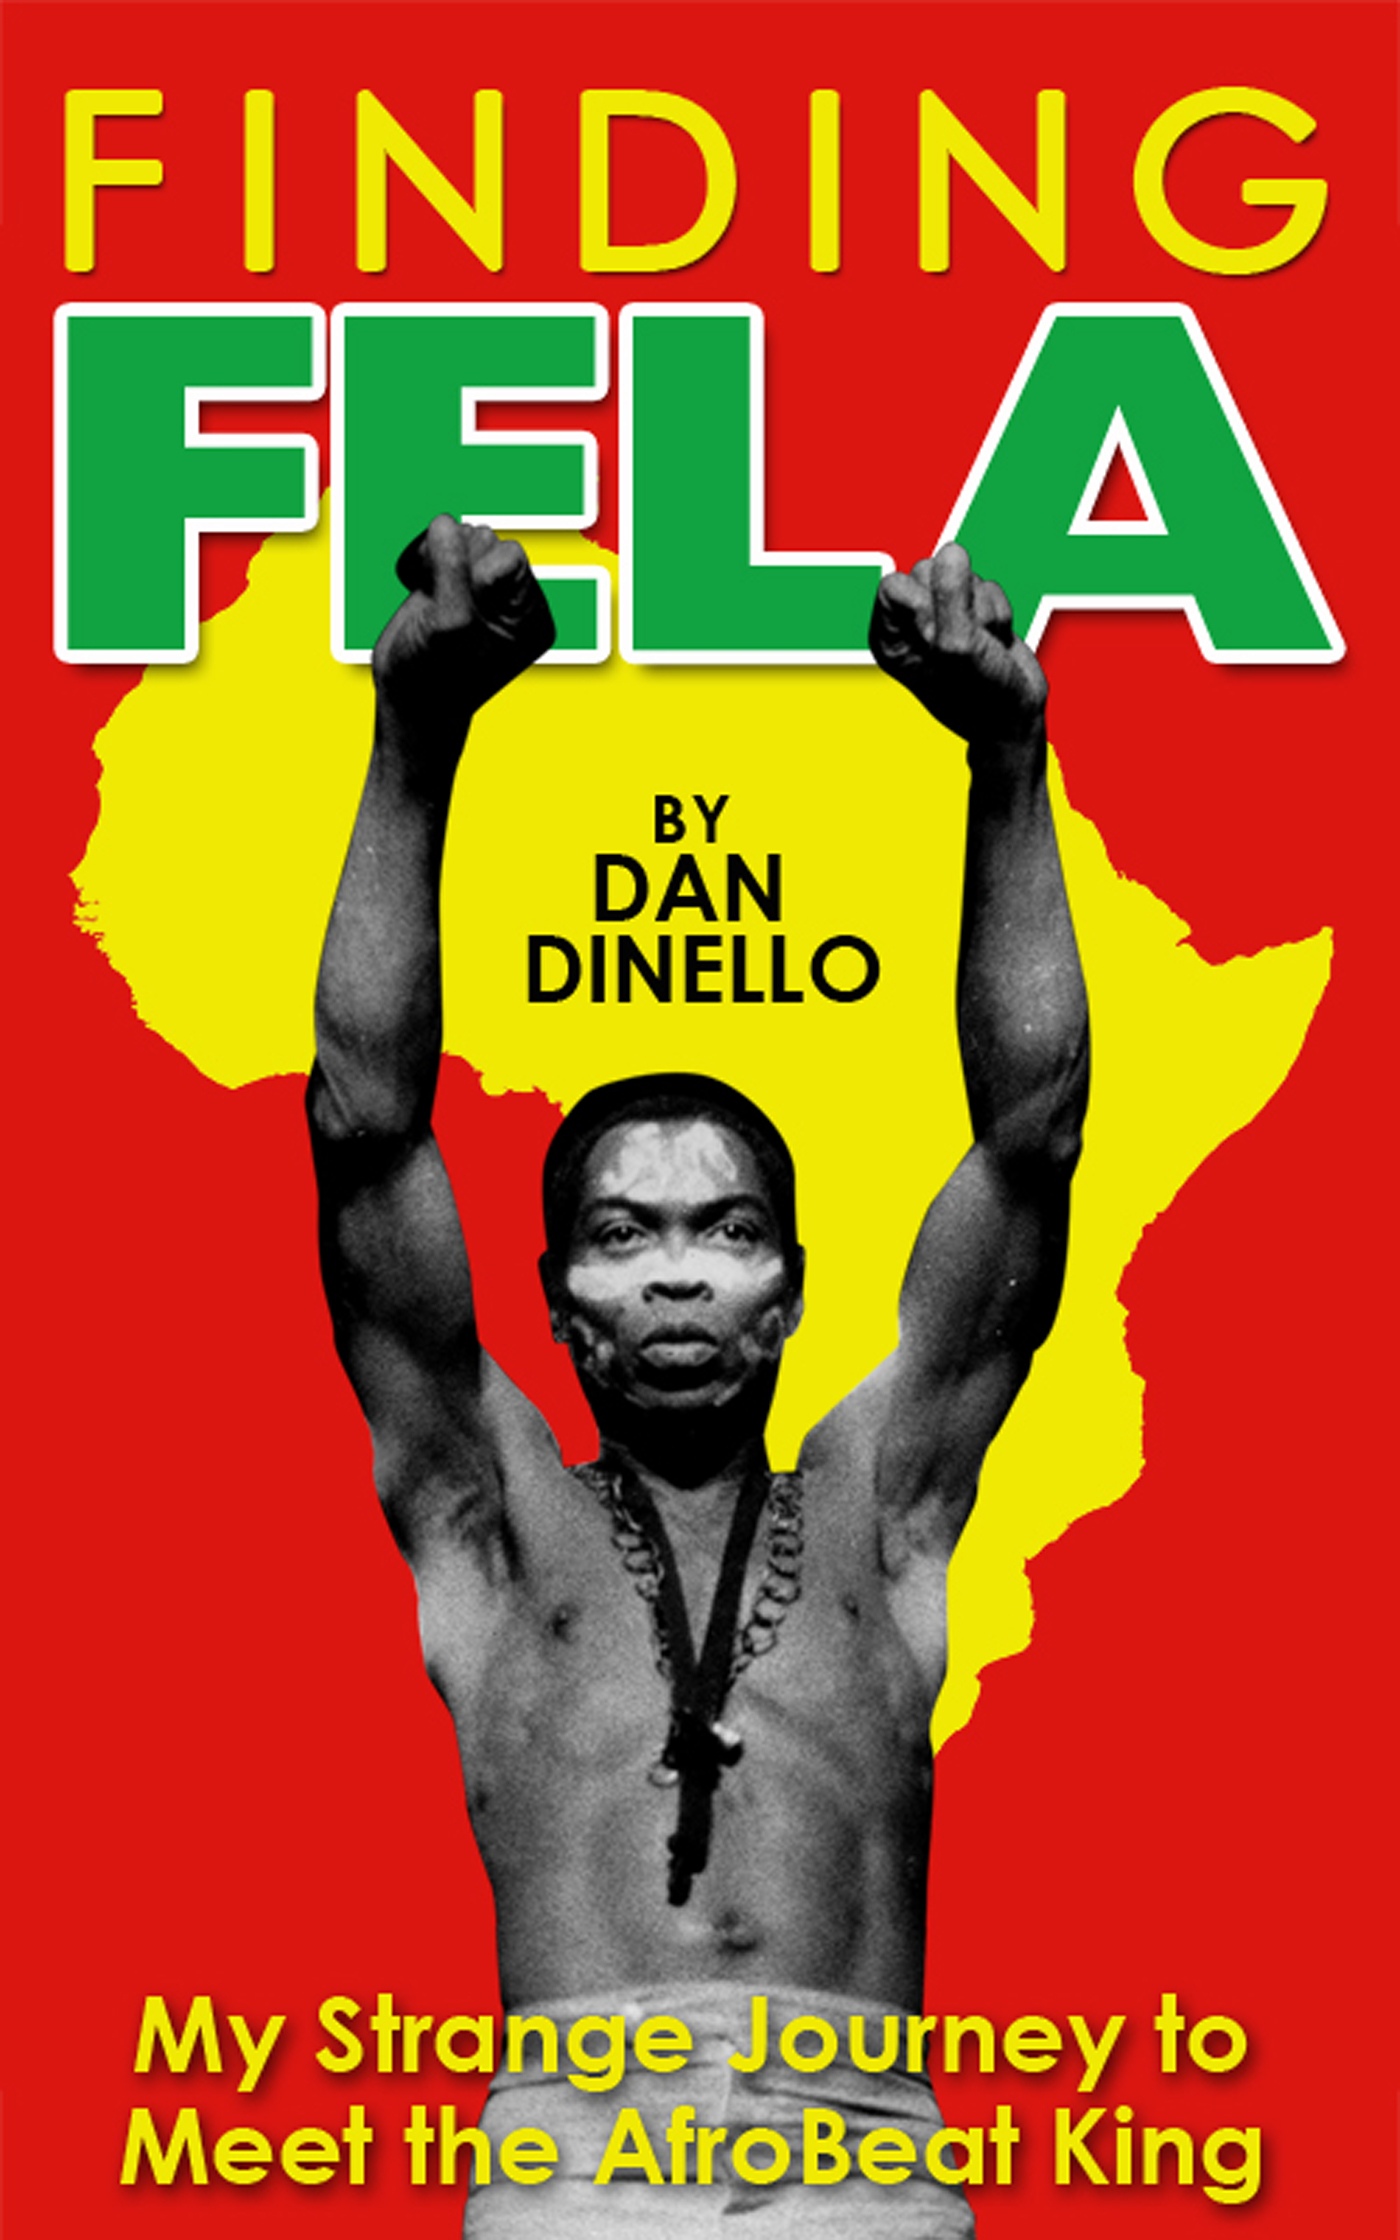 Finding Fela: My Strange Journey to Meet the AfroBeat King in Lagos [1983],  an Ebook by Dan Dinello